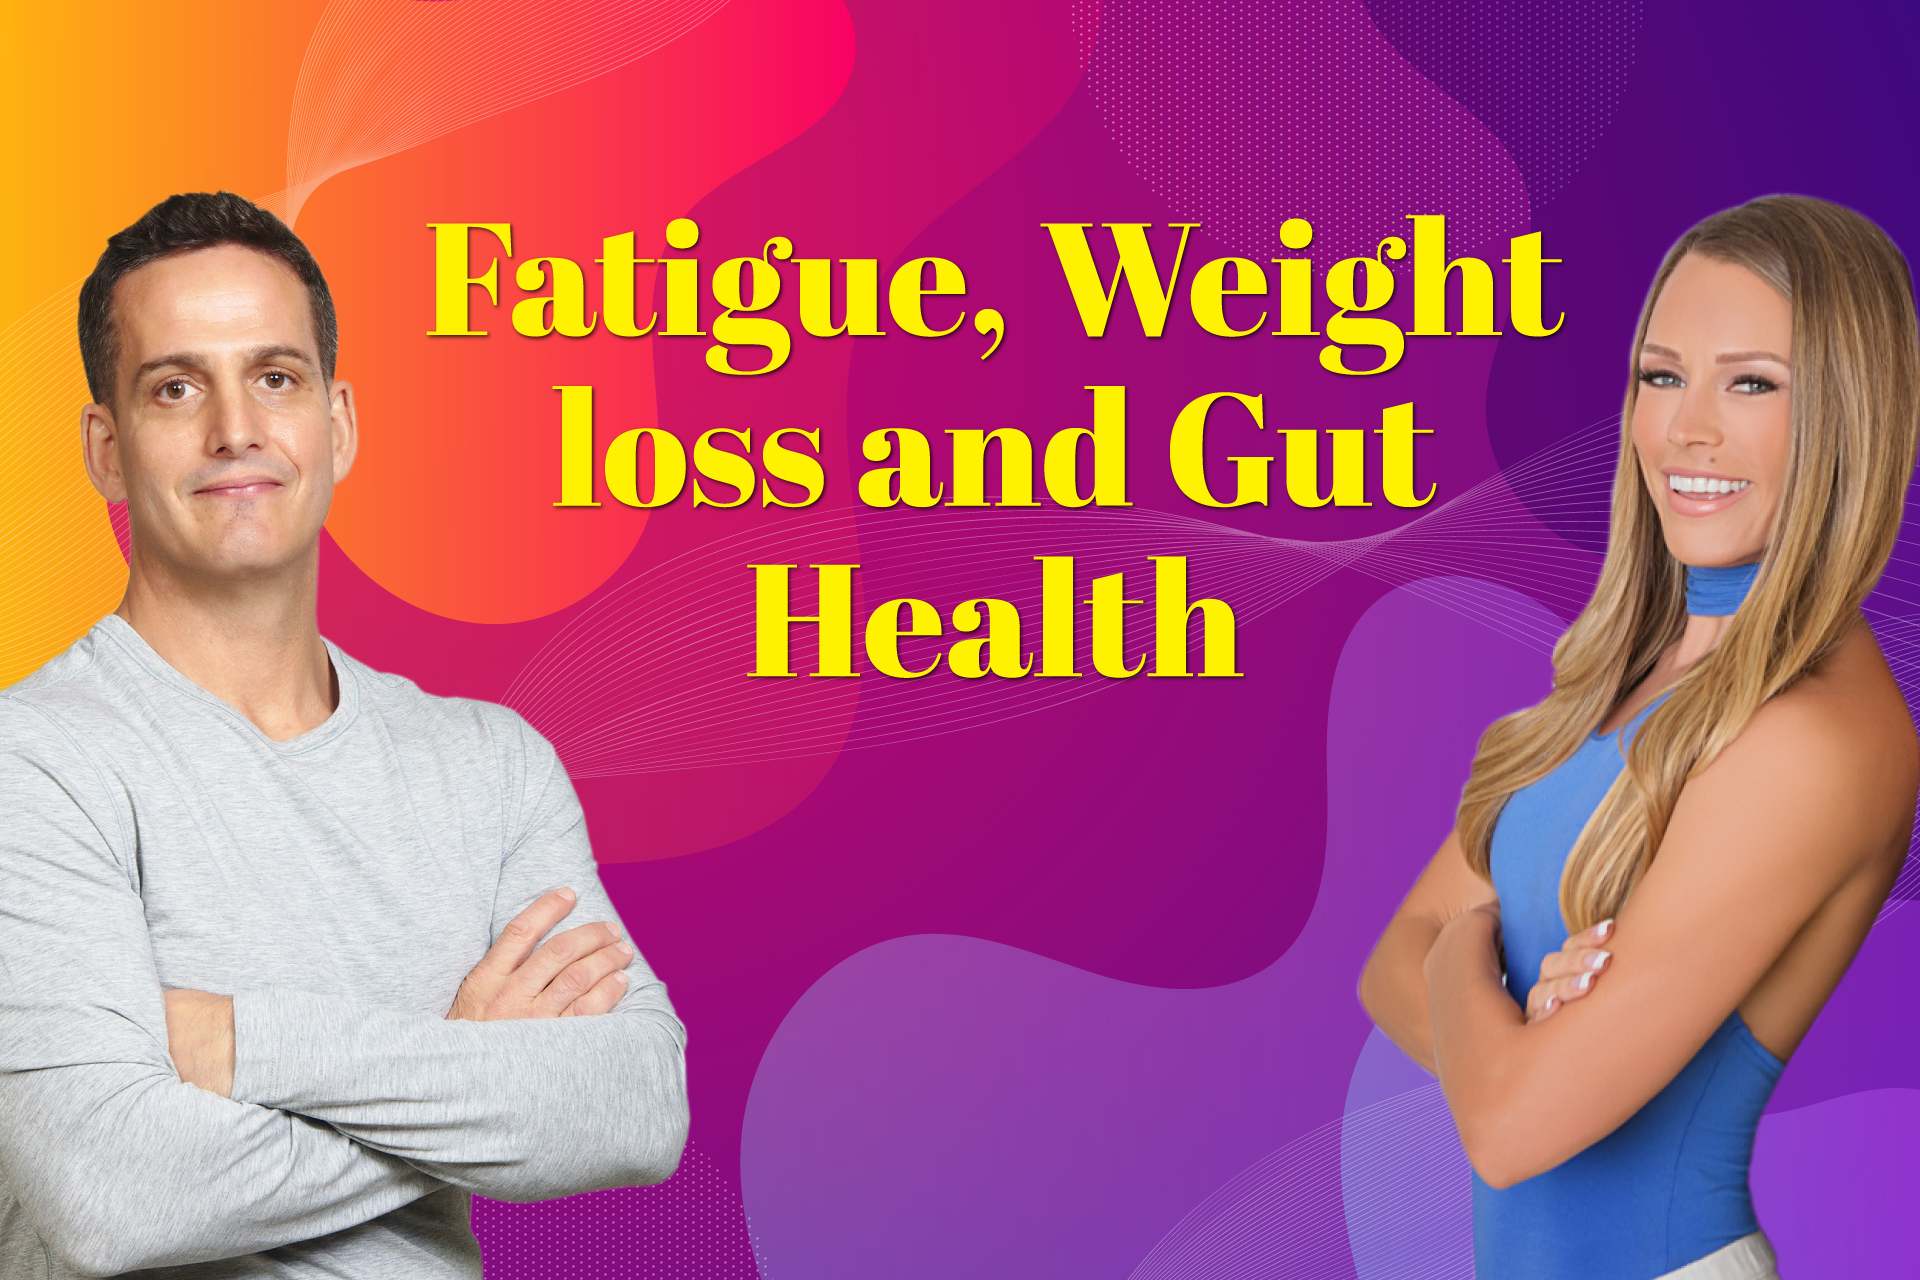 Fatigue, Weight Loss and Gut Health